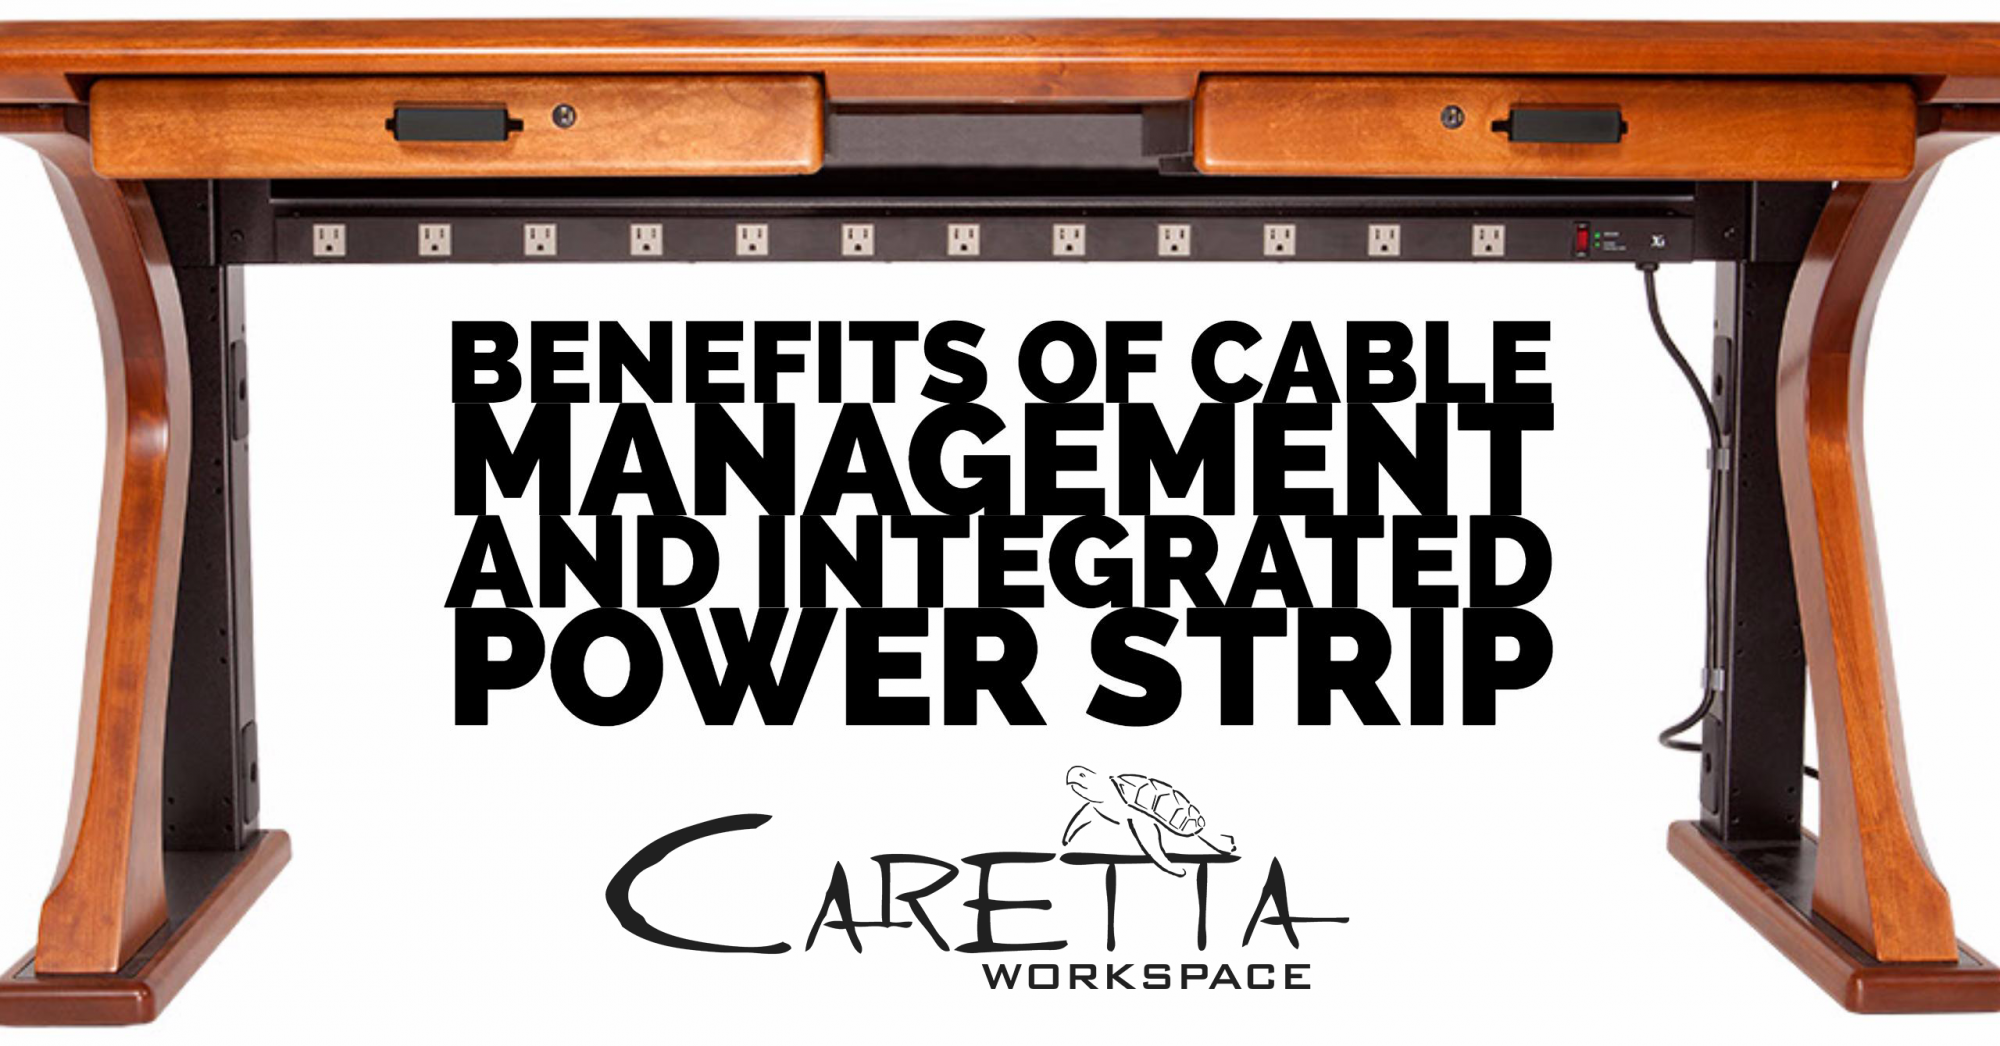 Benefits Of Cable Management And Integrated Power Strip Caretta Workspace